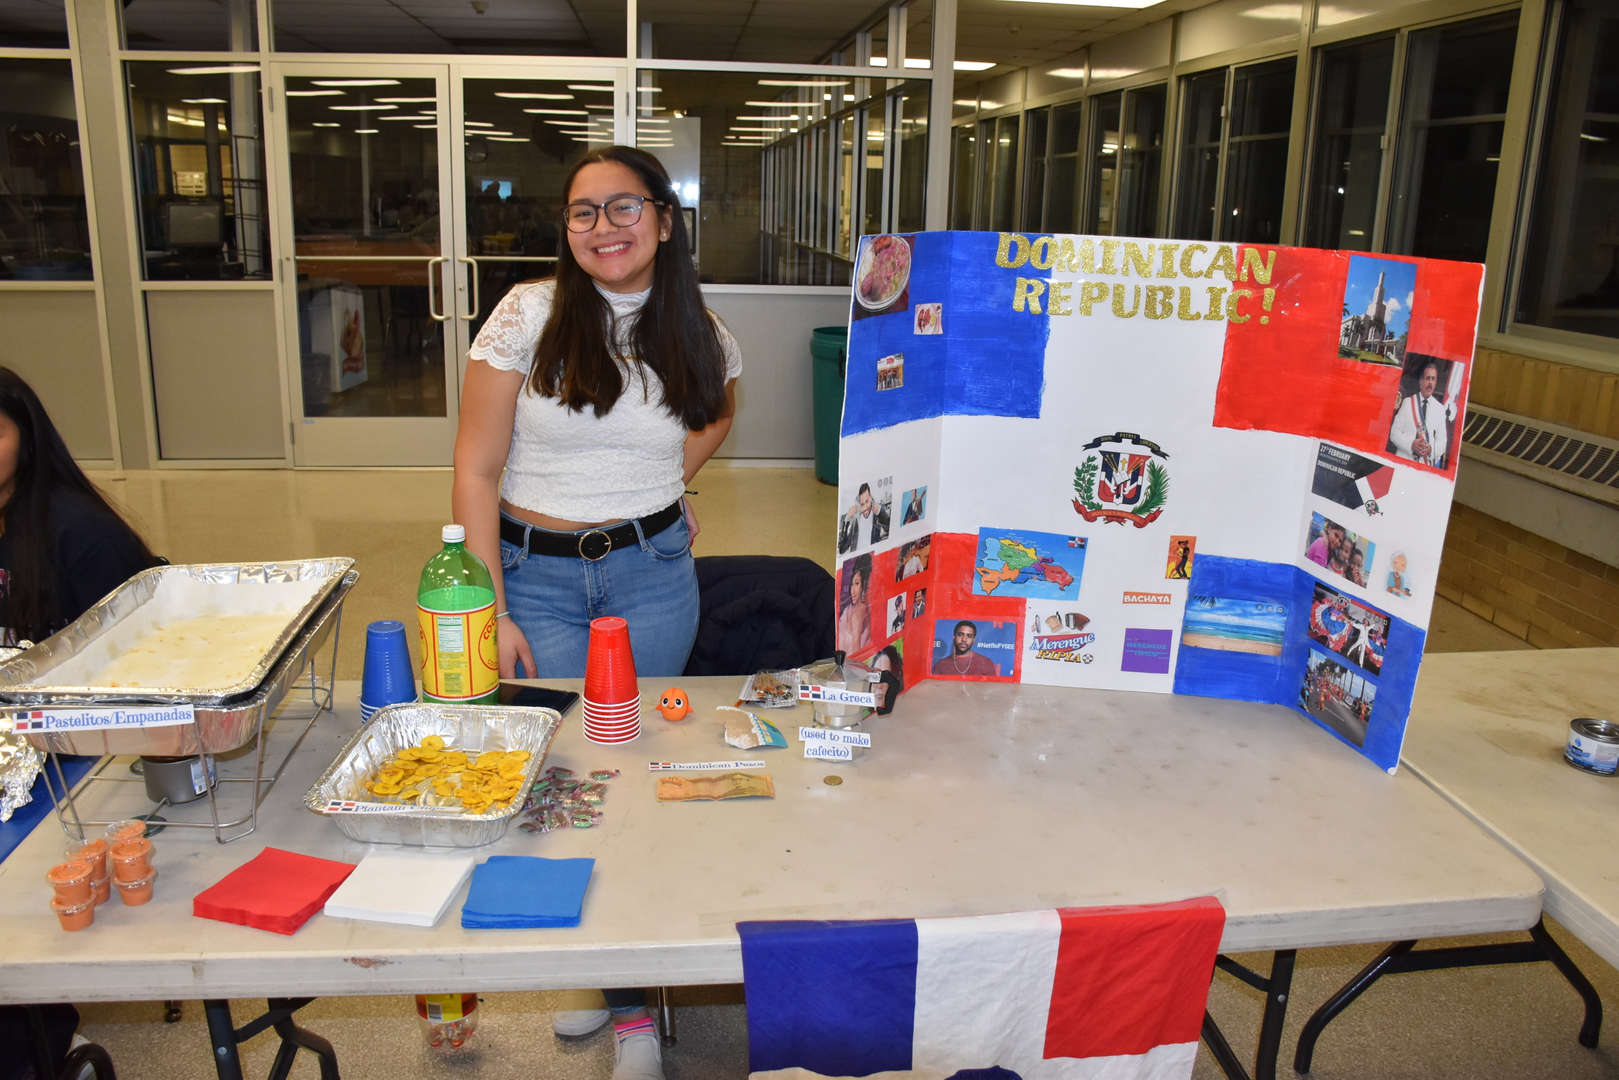 International Night Domican Republic